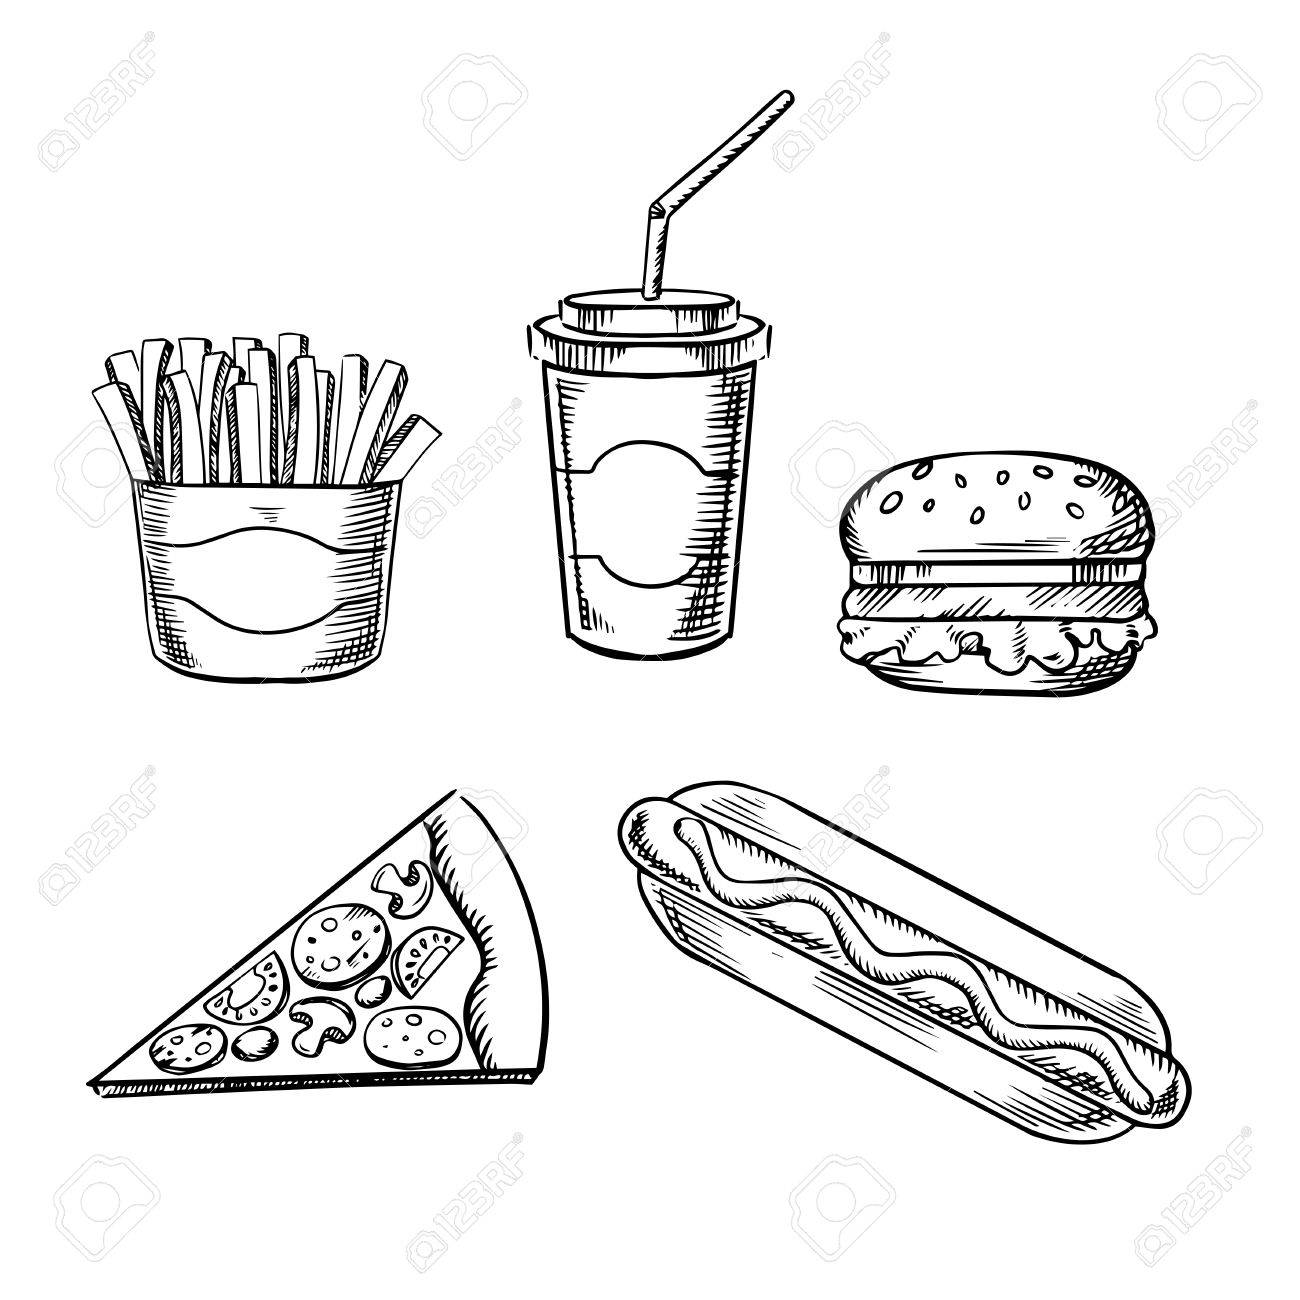 The Best Free Hamburger Drawing Images Download From 156